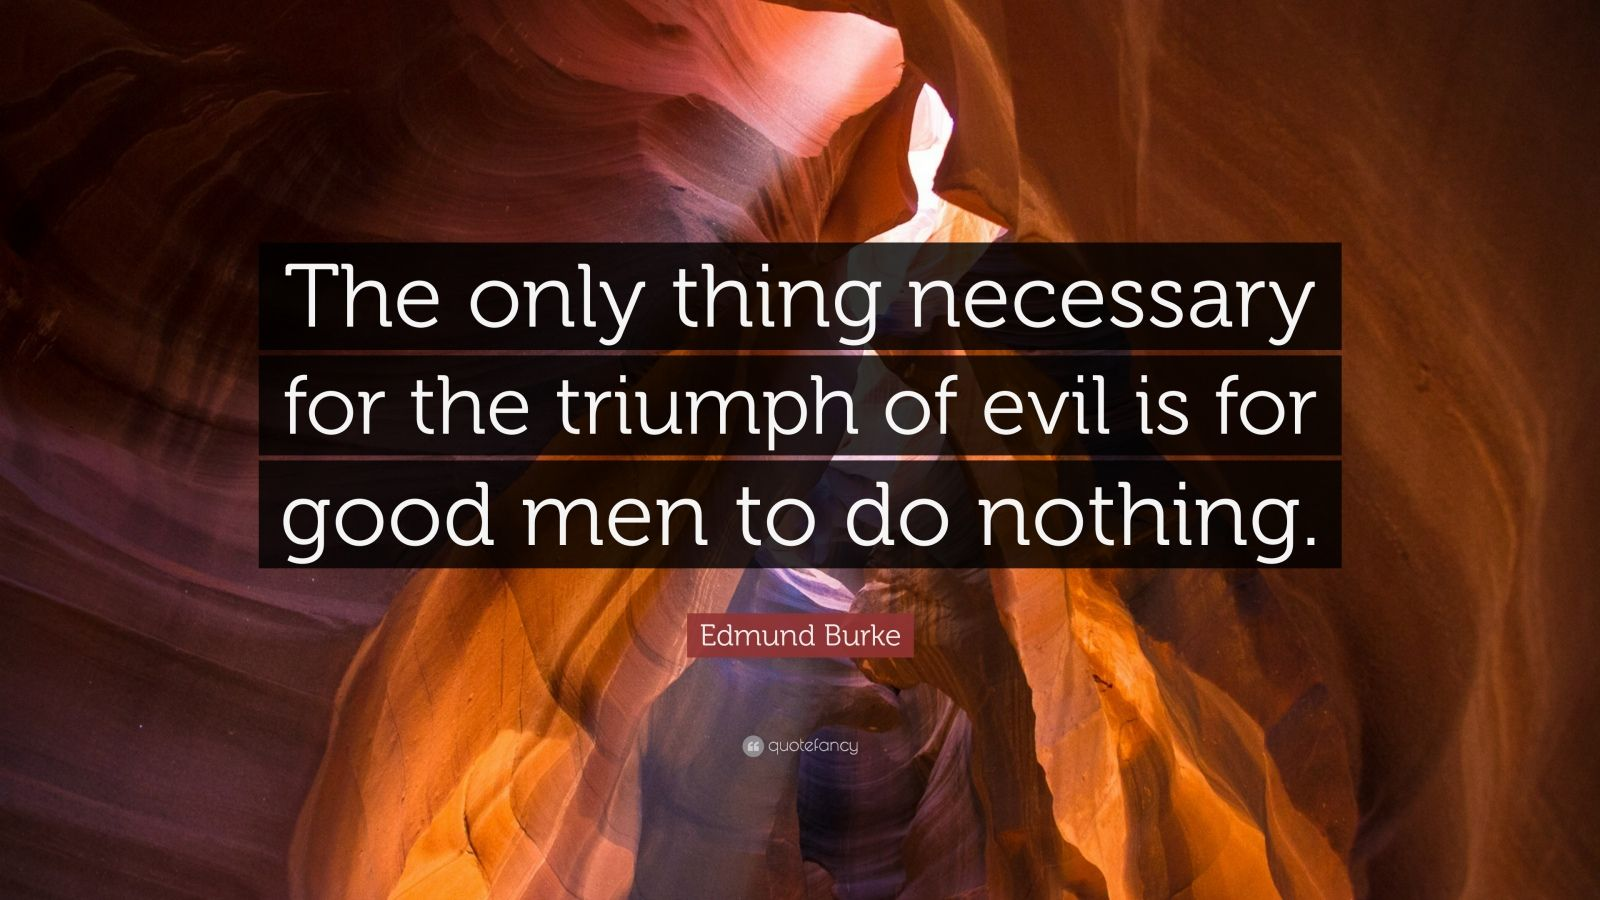 The Only Thing Necessary For The Triumph Of Evil Is For Good Men To Do Nothing 58